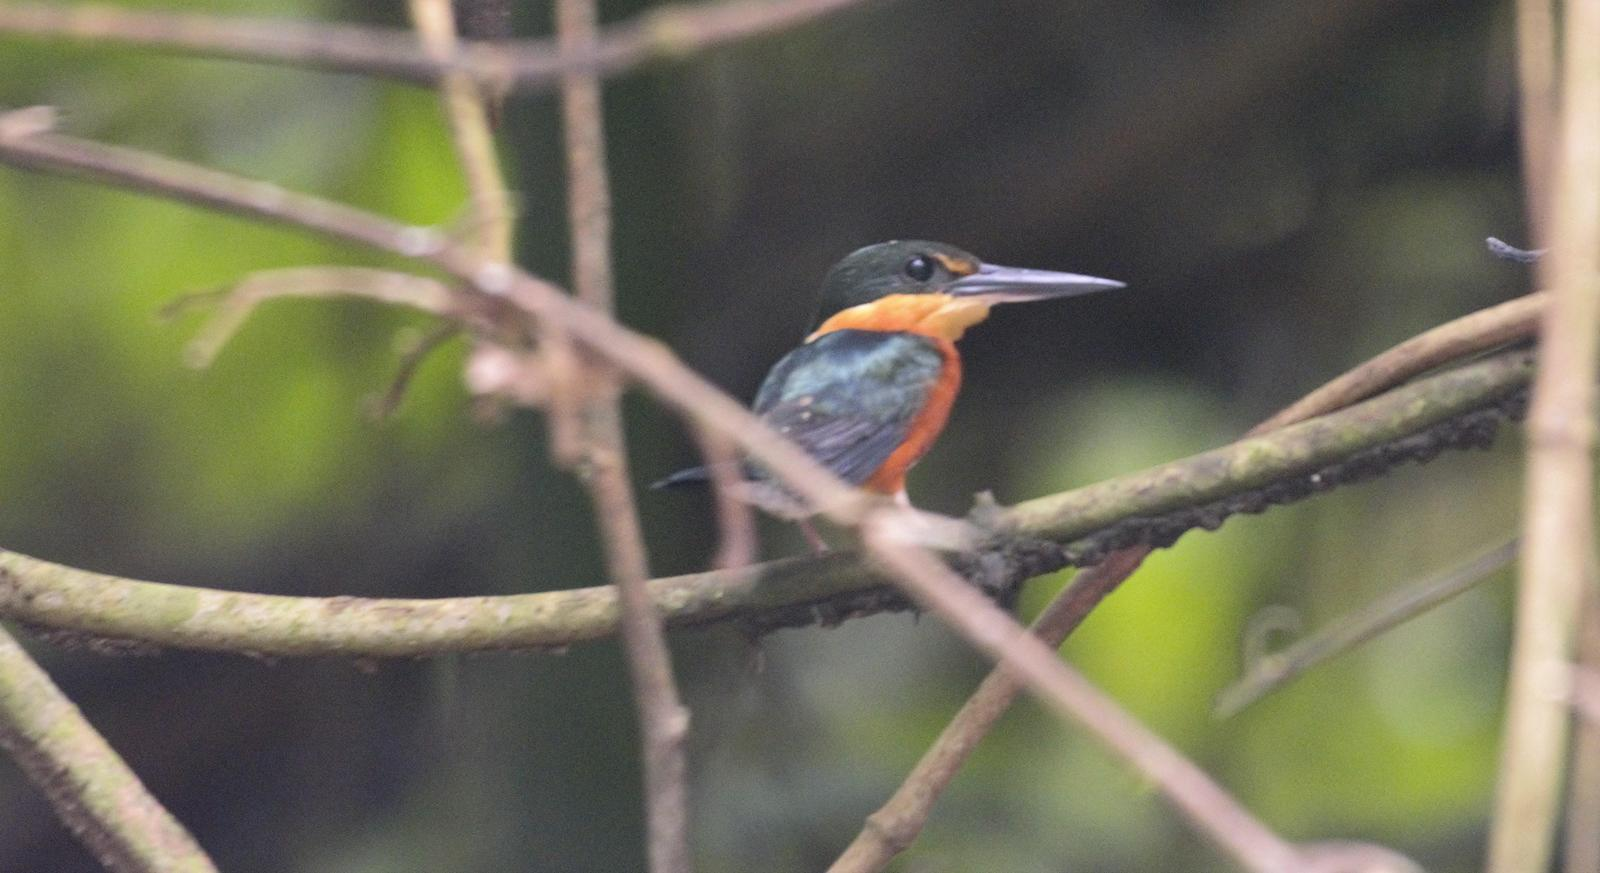 American Pygmy Kingfisher Photo by Erik Ostrander